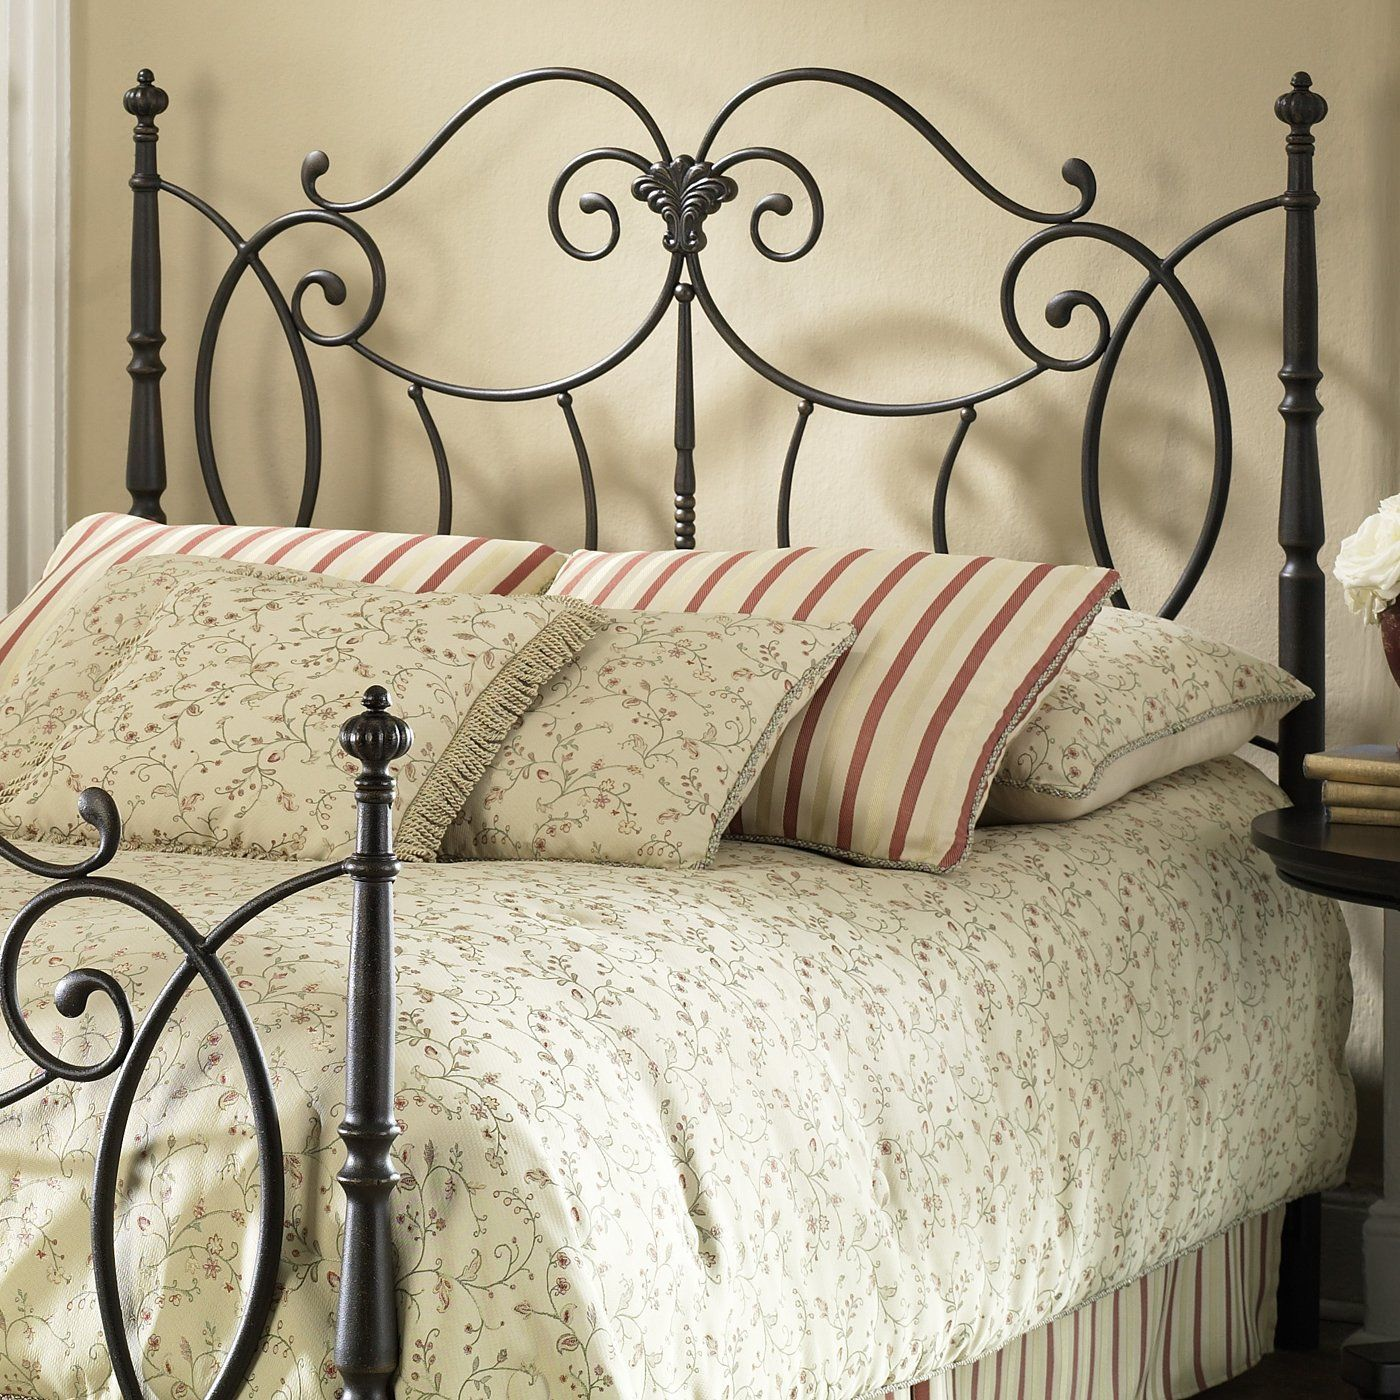 Fashion Bed Group Shannon Wrought iron beds, Iron